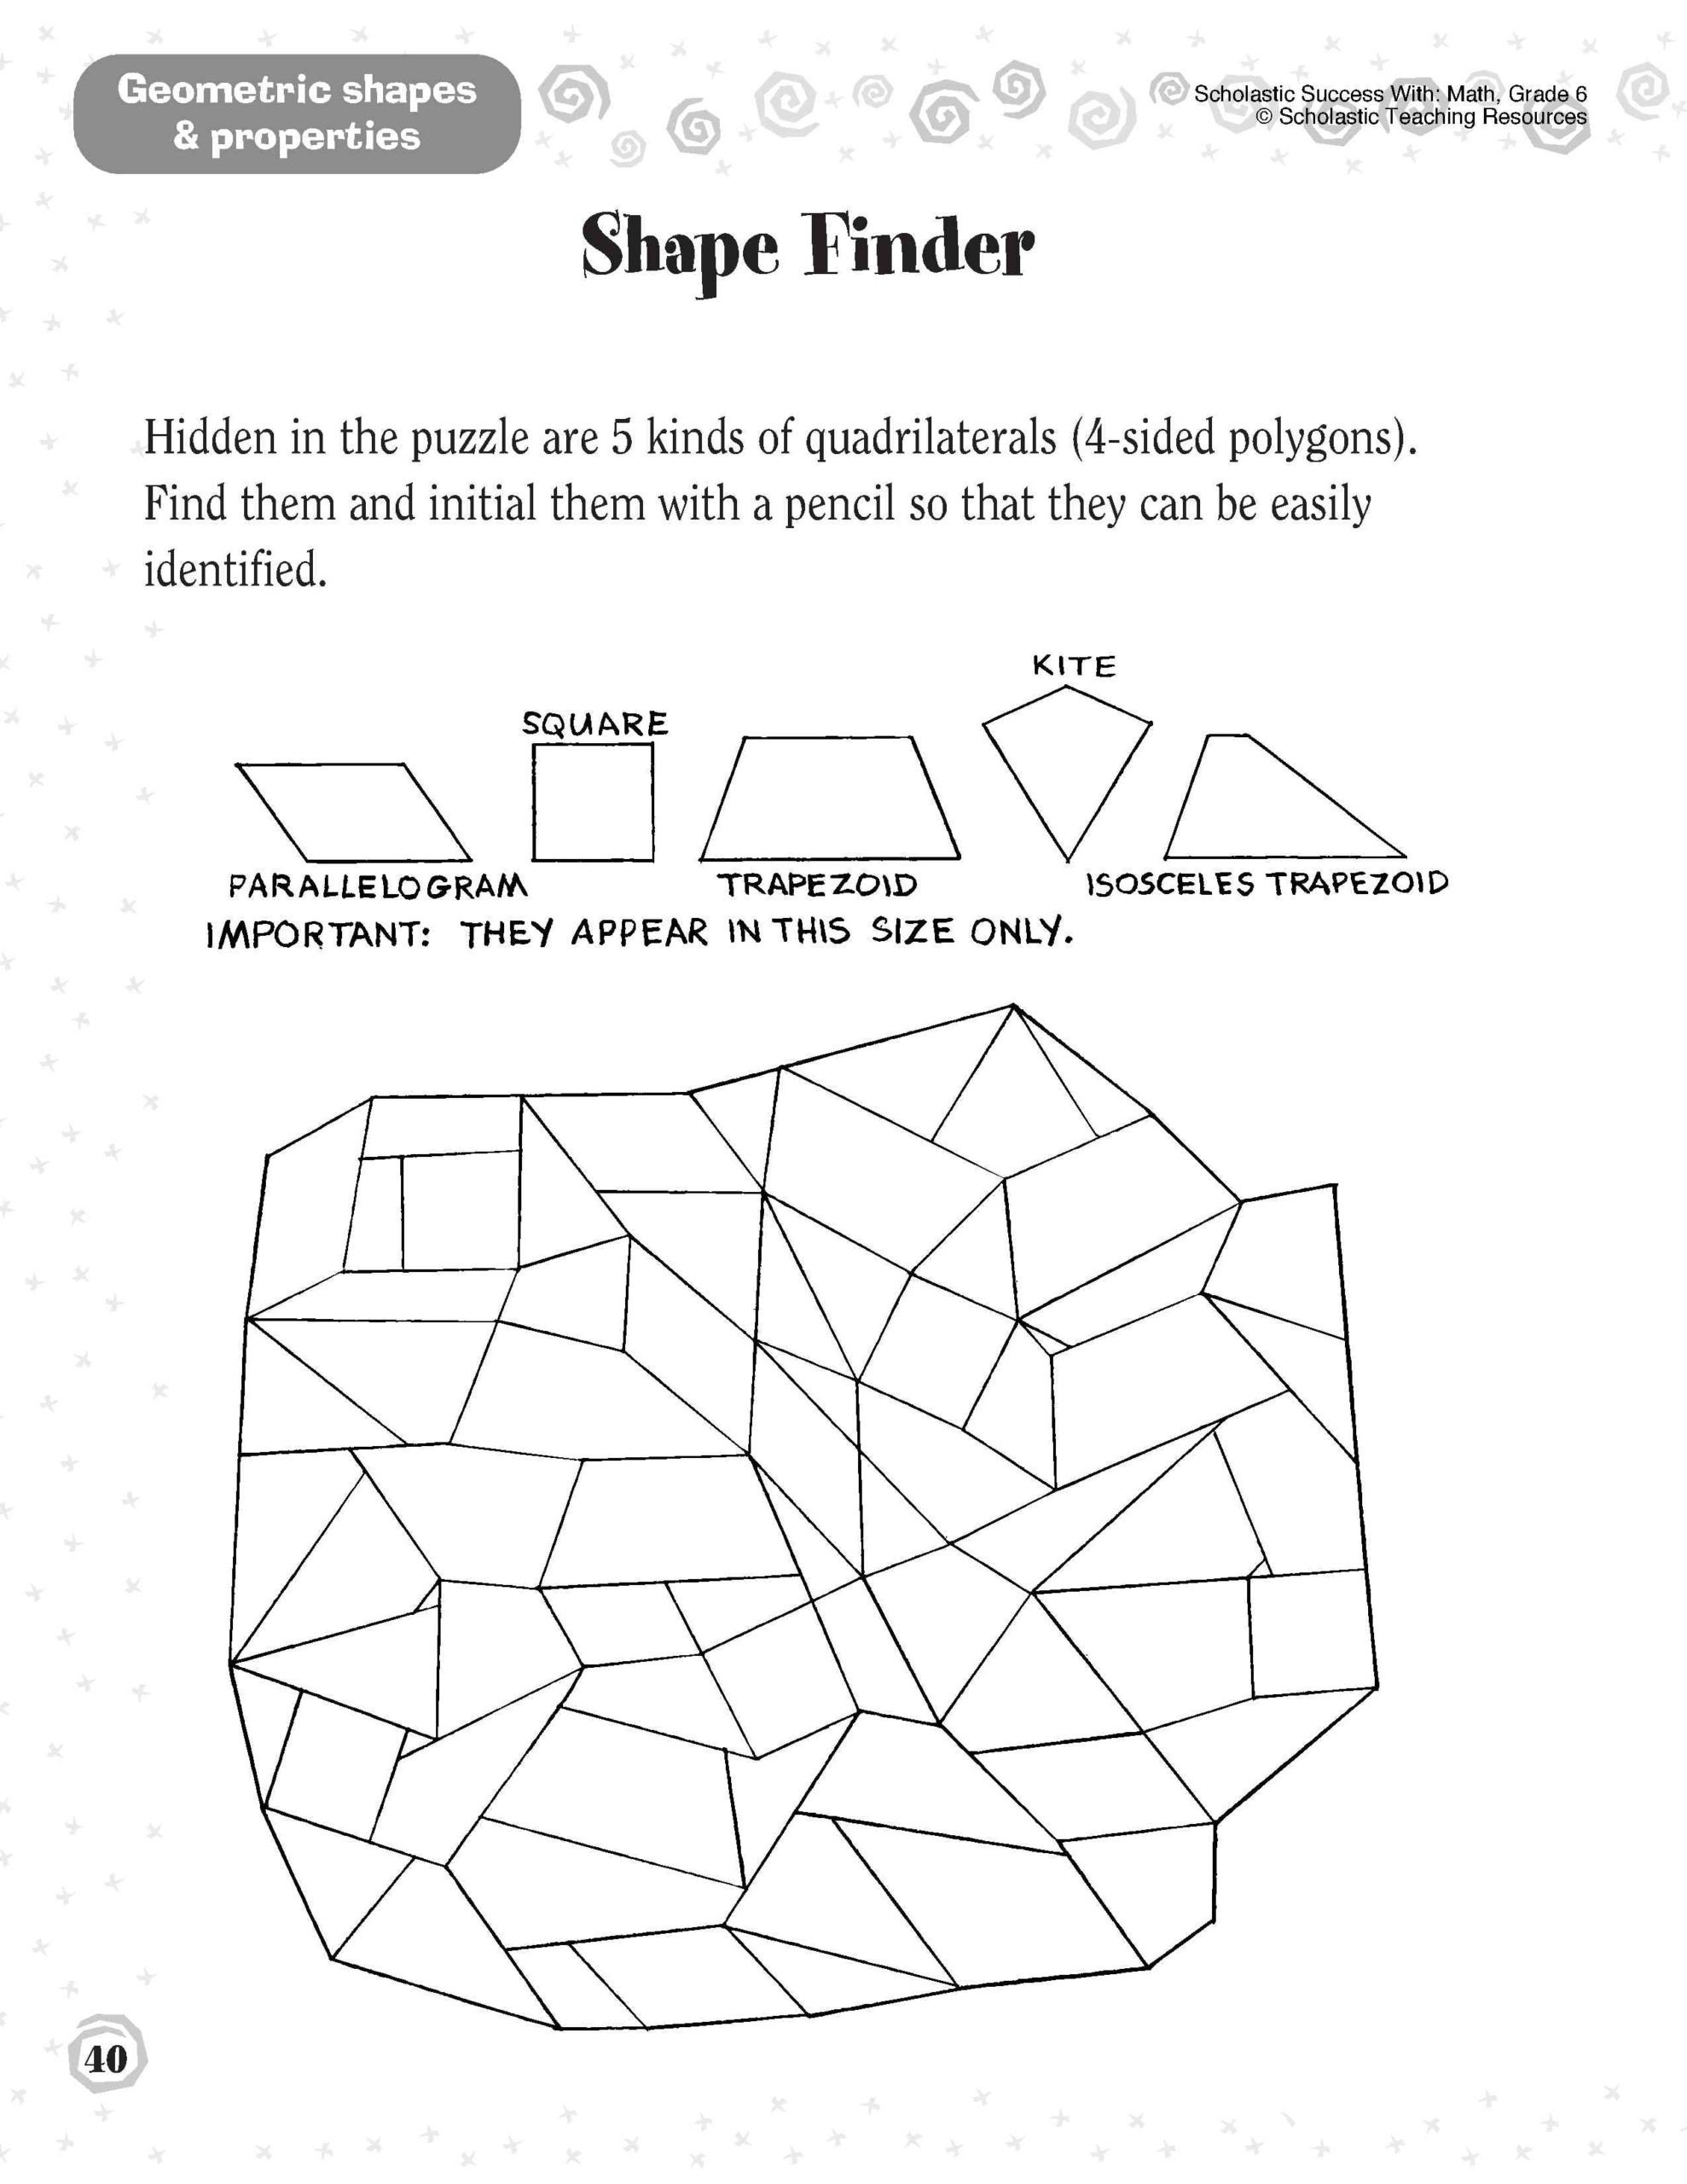 Geometric Shape Patterns Worksheet 1st Grade Shapes Worksheet Printable Worksheets and